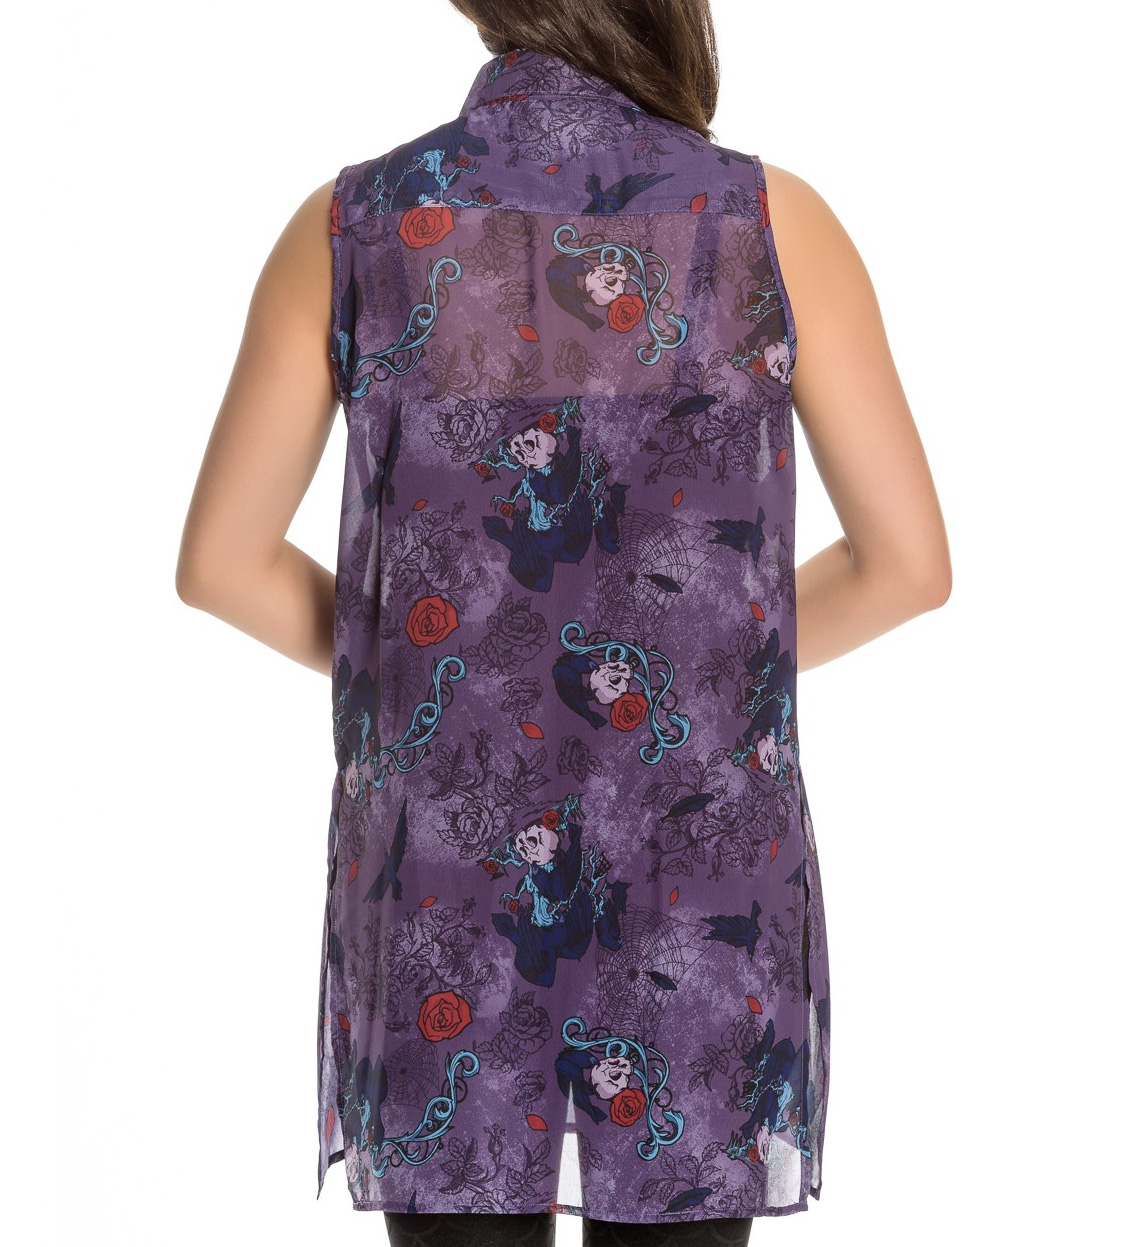 Hell-Bunny-Shirt-Top-Goth-Punk-Roses-Skulls-RAVEN-Purple-Blouse-All-Sizes thumbnail 21